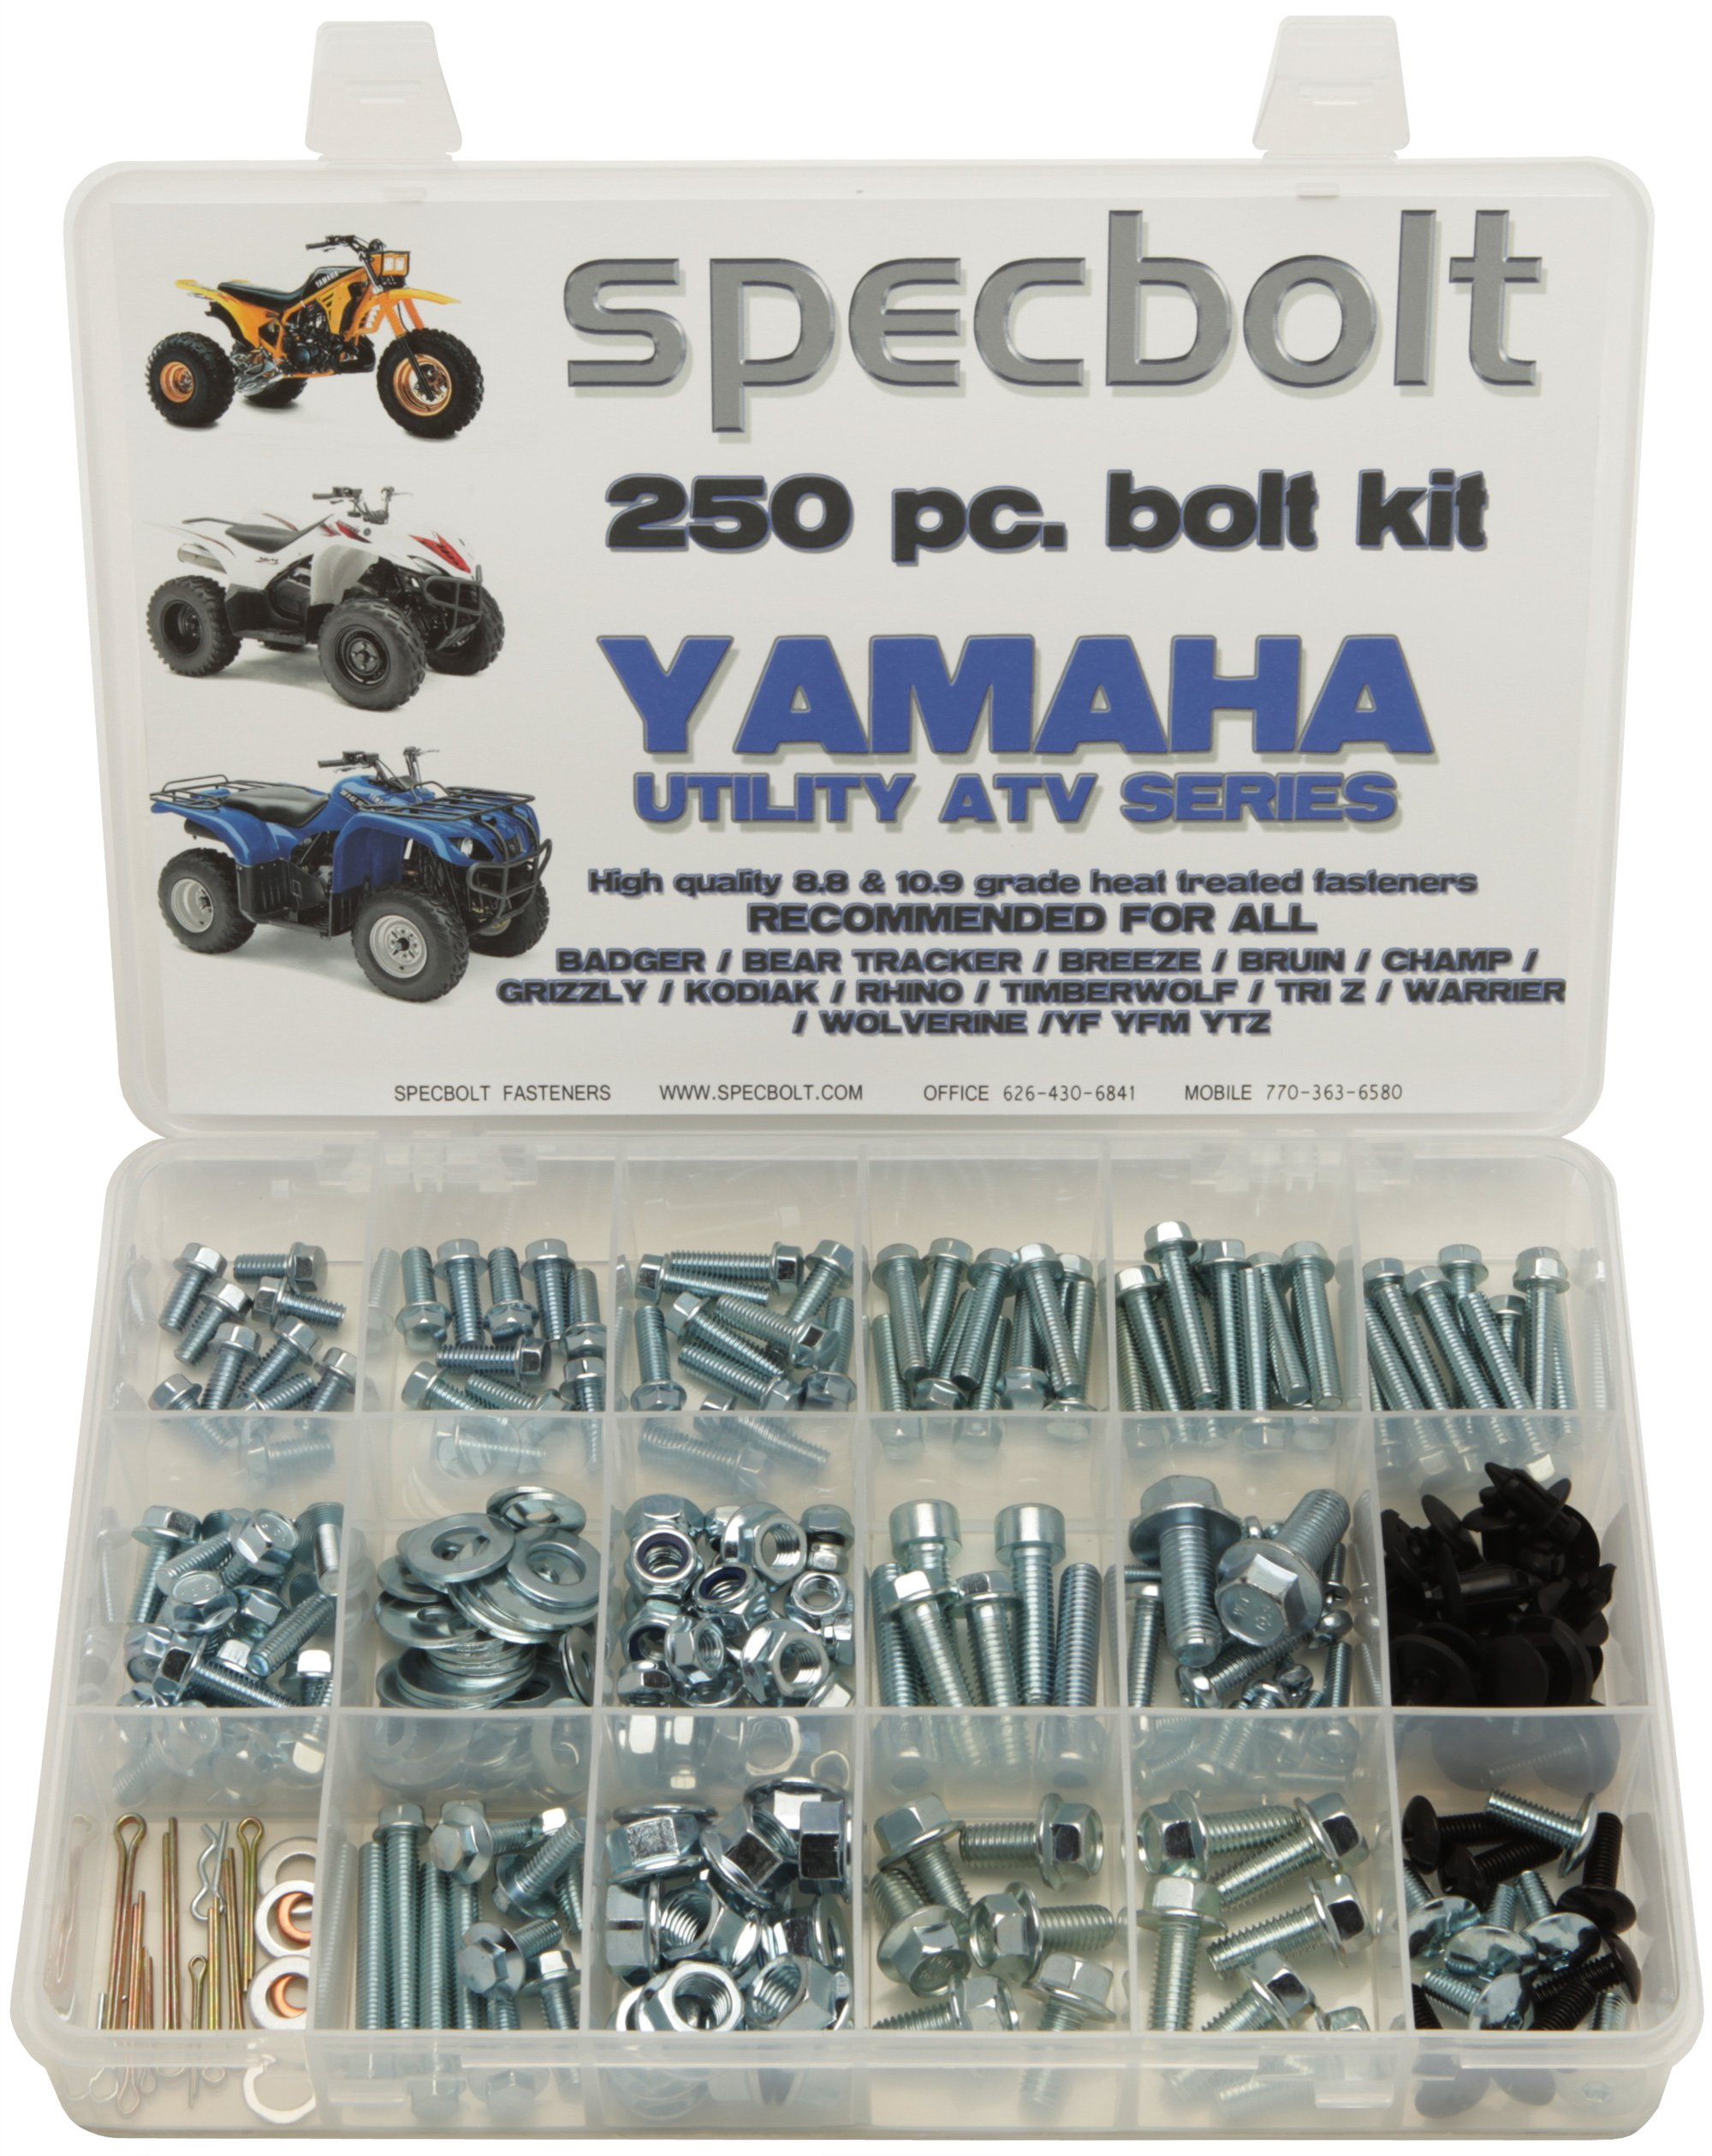 250pc Specbolt Bolt Kit for Yamaha UTILITY ATV including all Grizzly Warrior Wolverine Big Bear Tracker Breeze Timberwolf Rhino YFM YTZ for Maintenance & Restoration using OEM Spec Fasteners for Quads